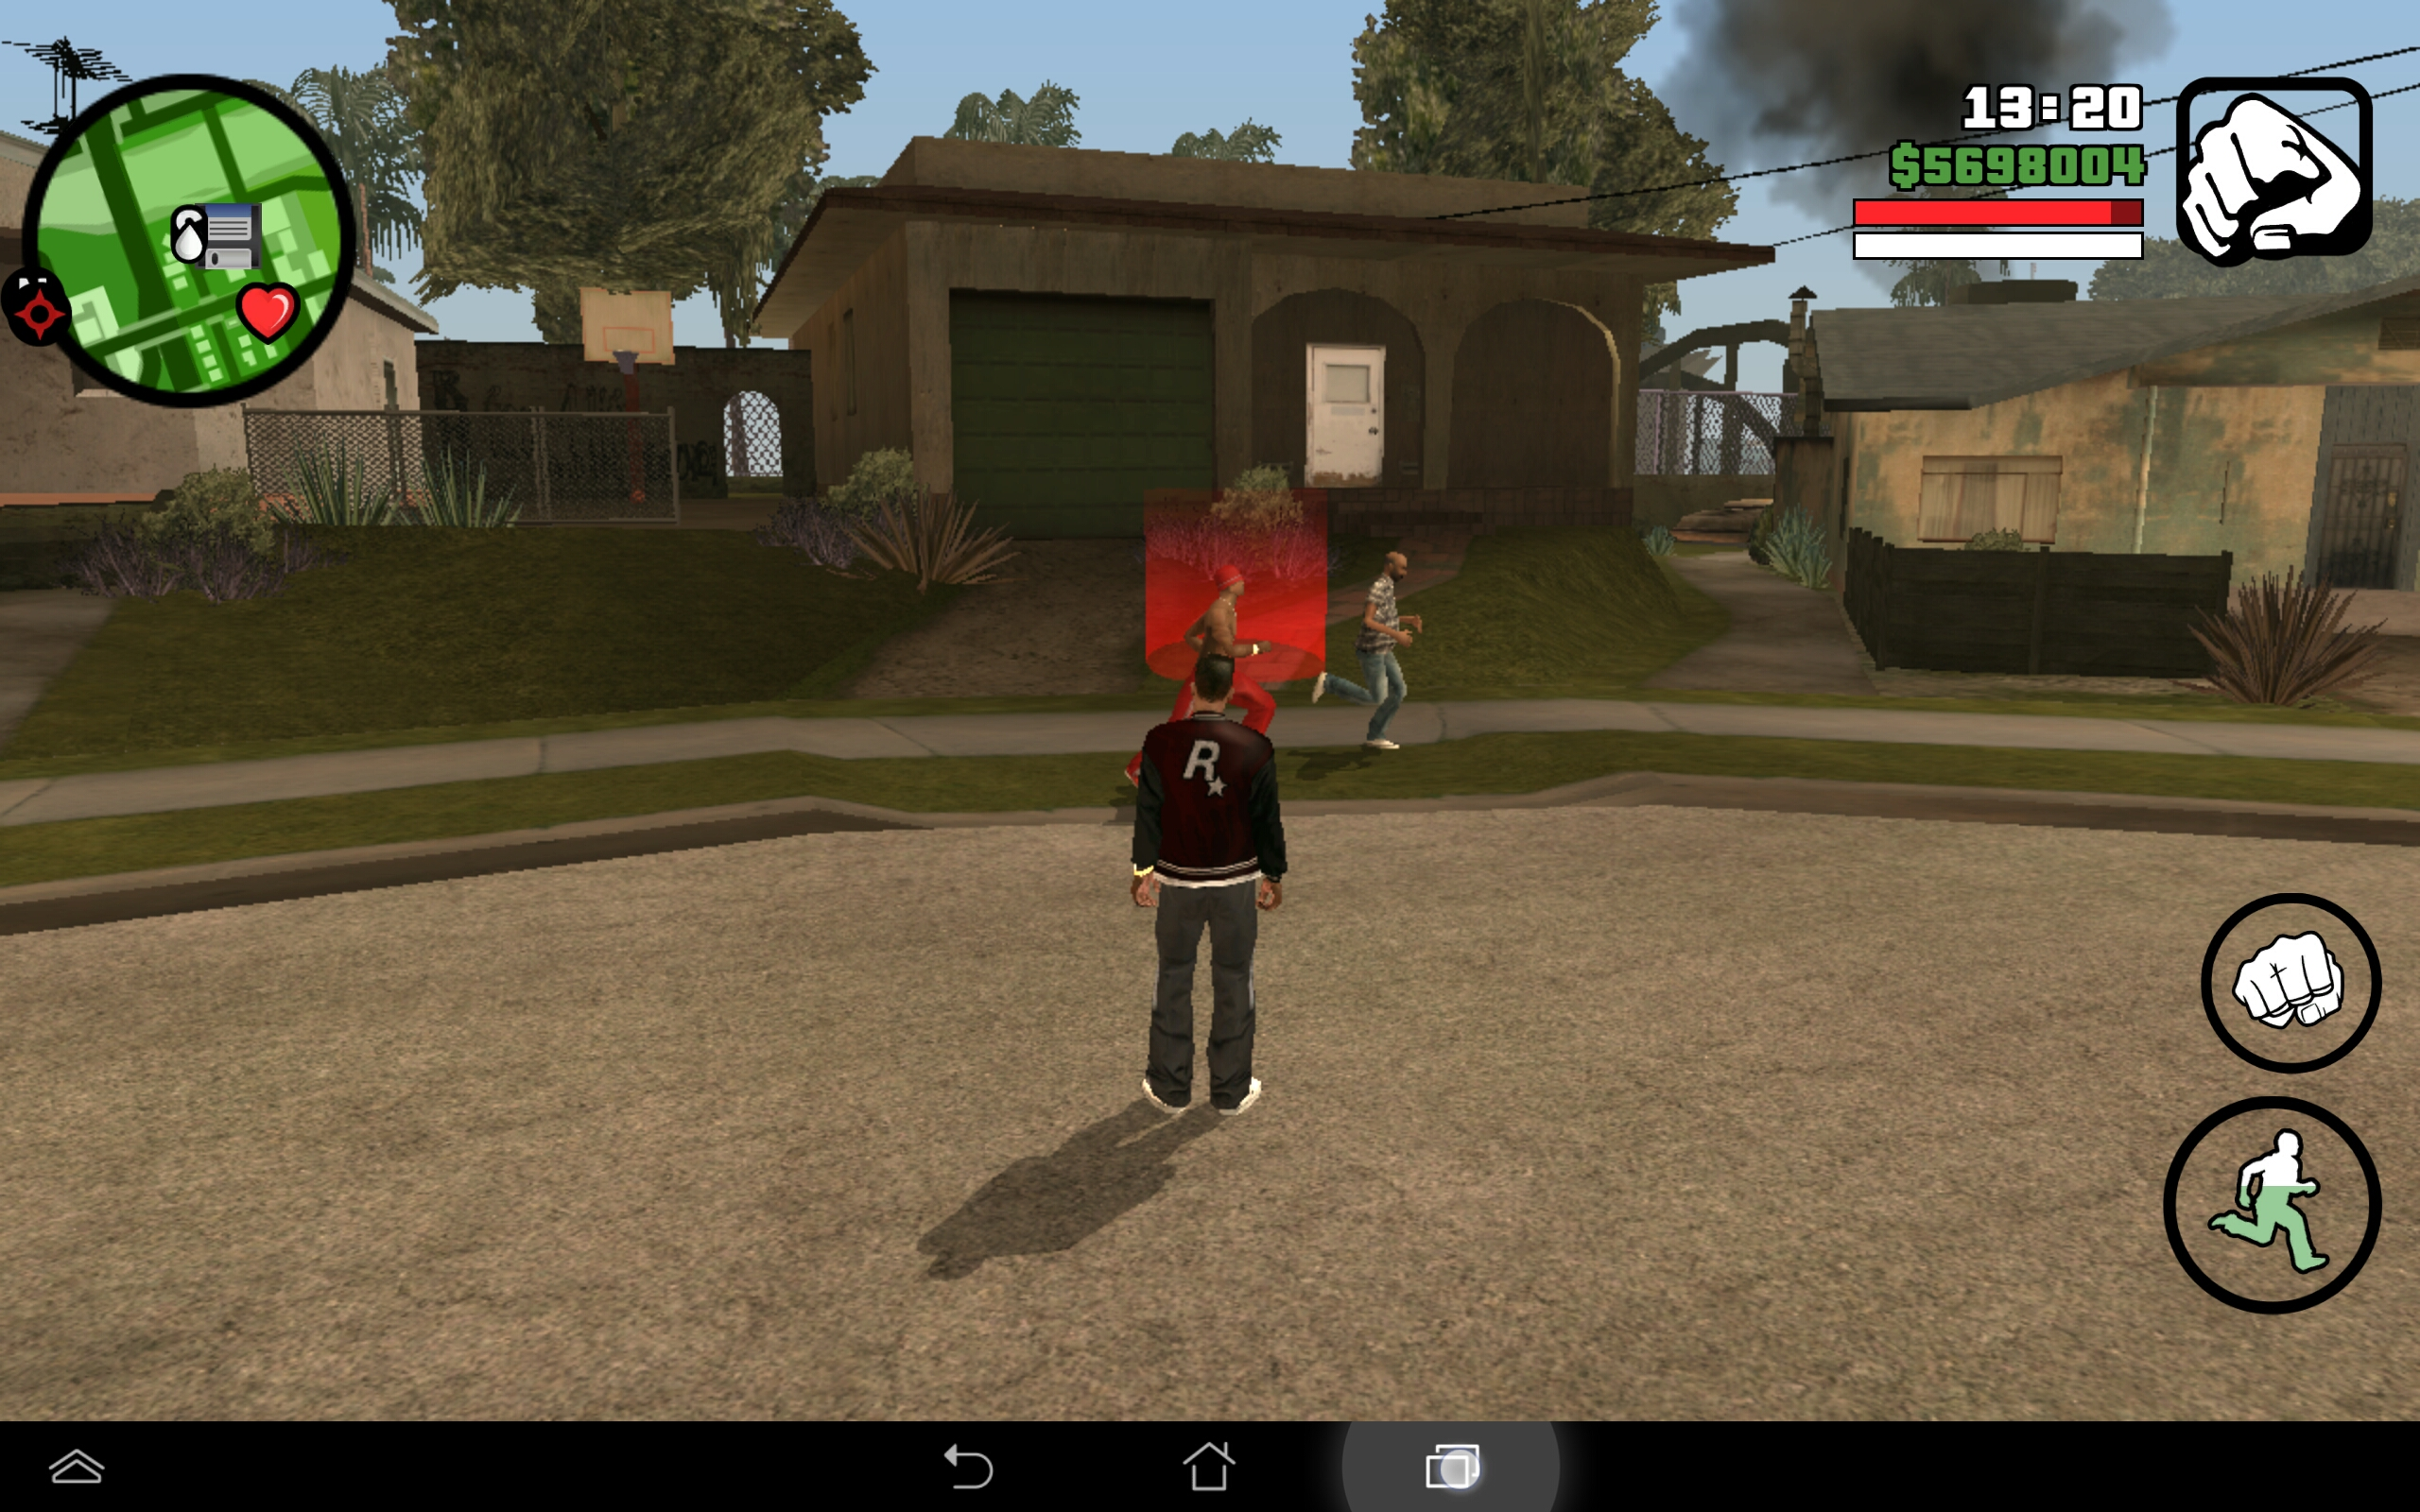 download save file of gta san andreas missions